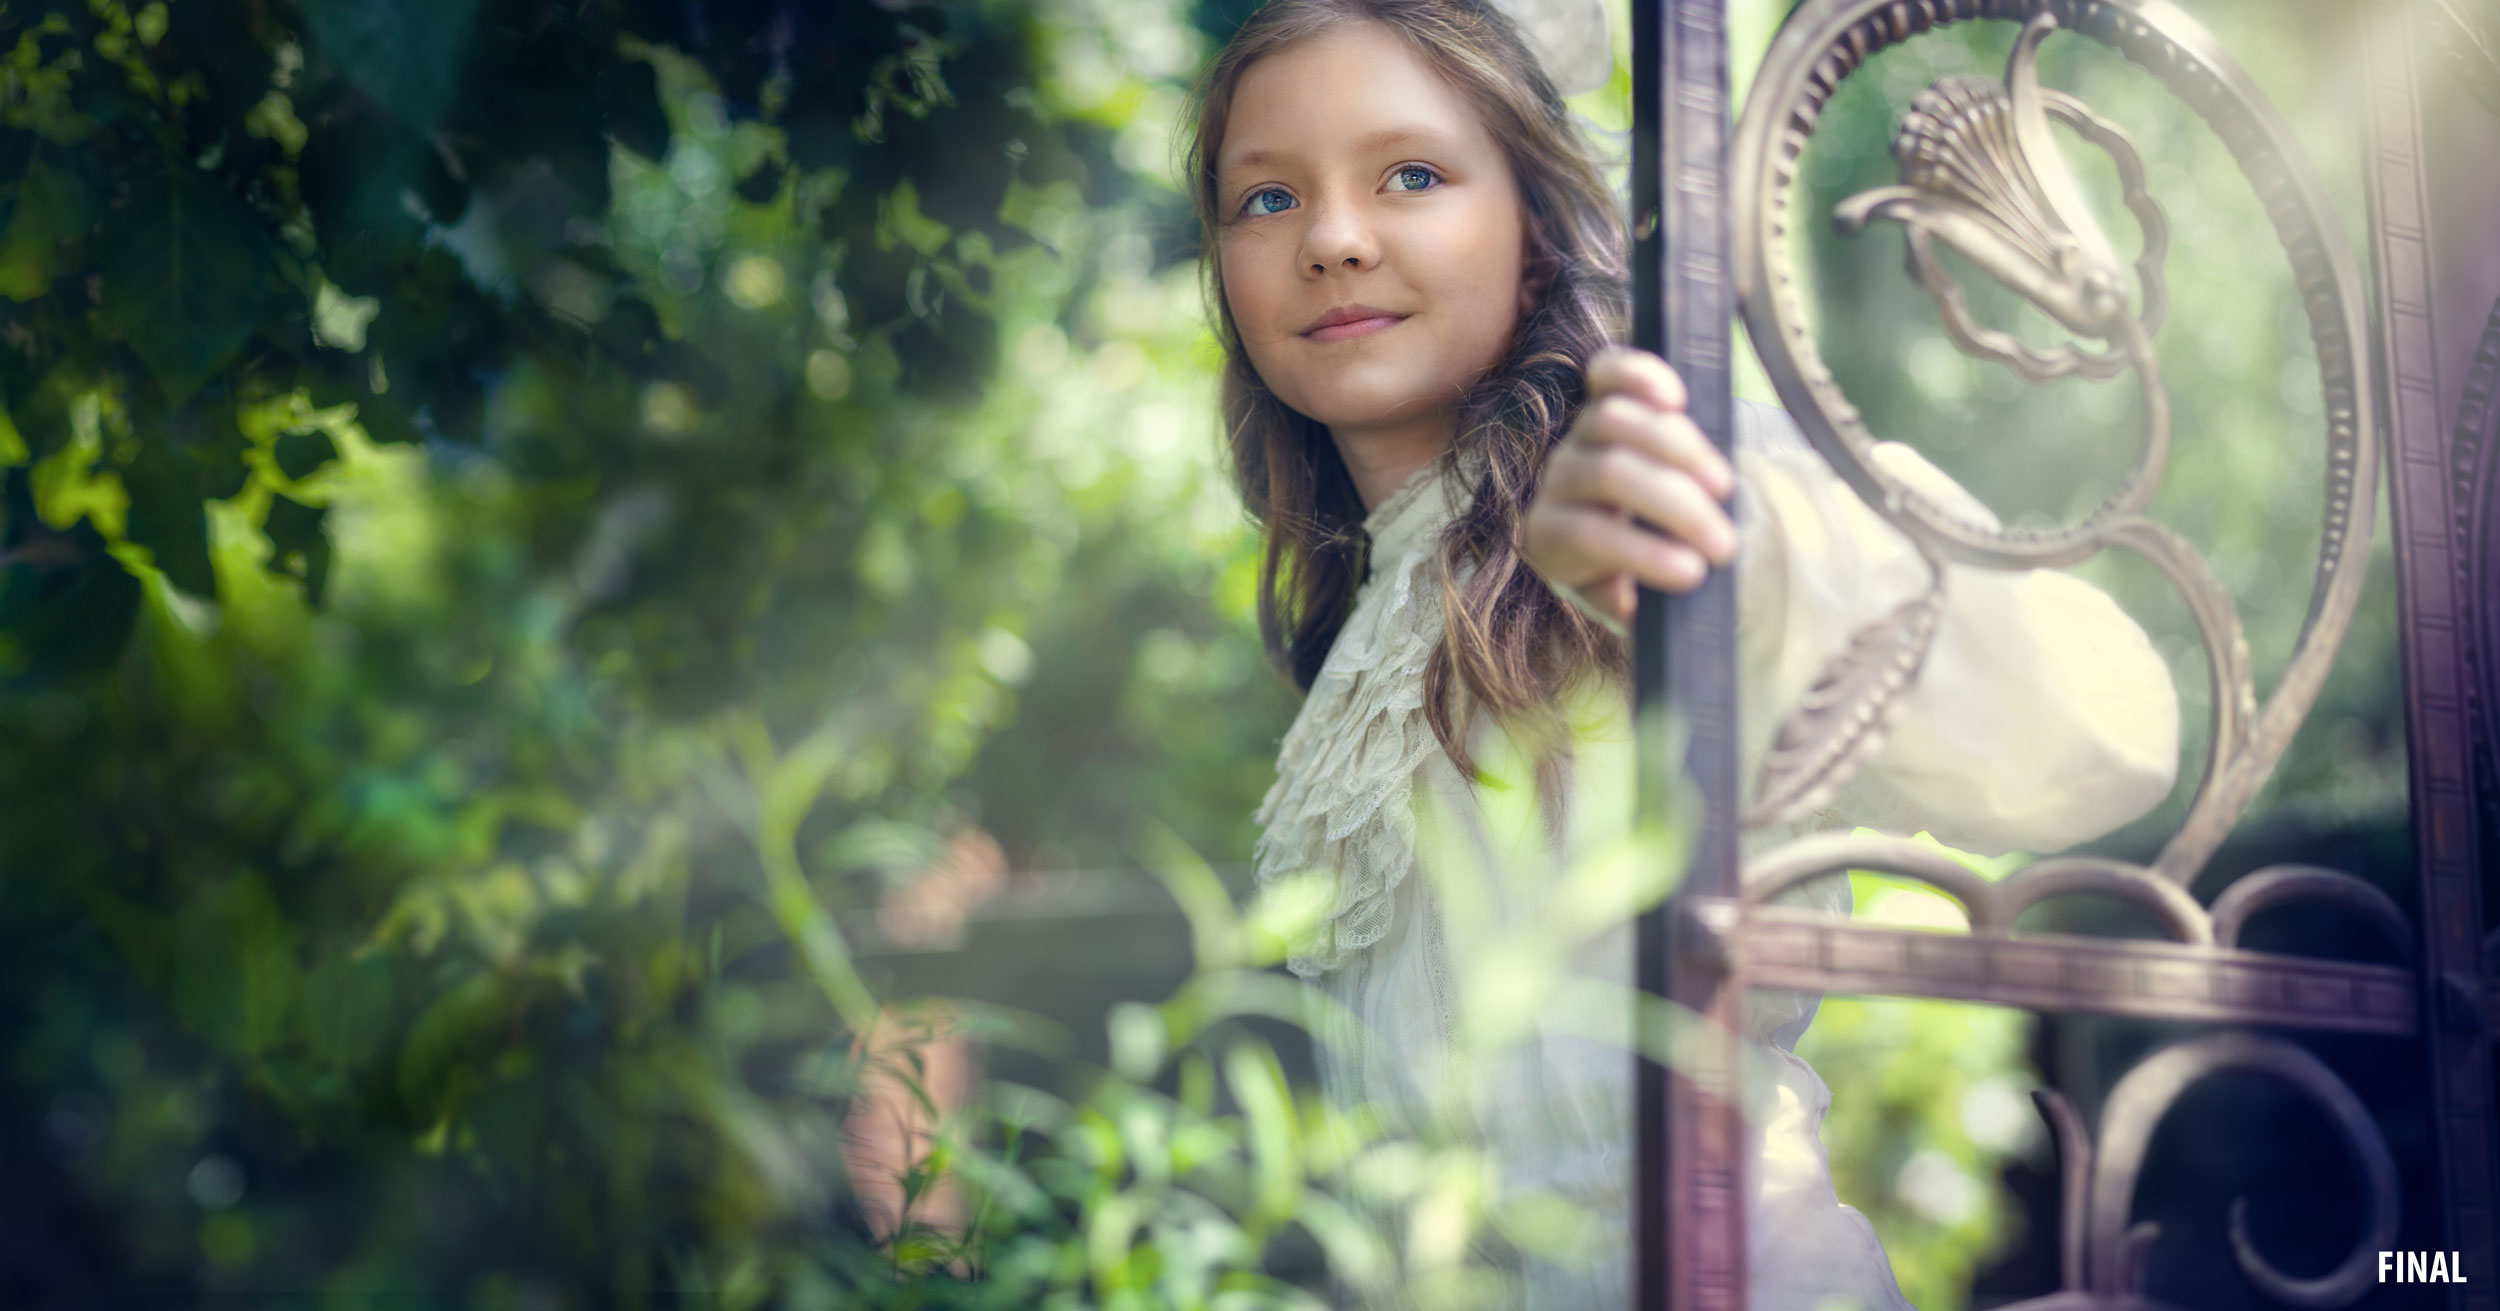 composite image of girl in woods with iron door